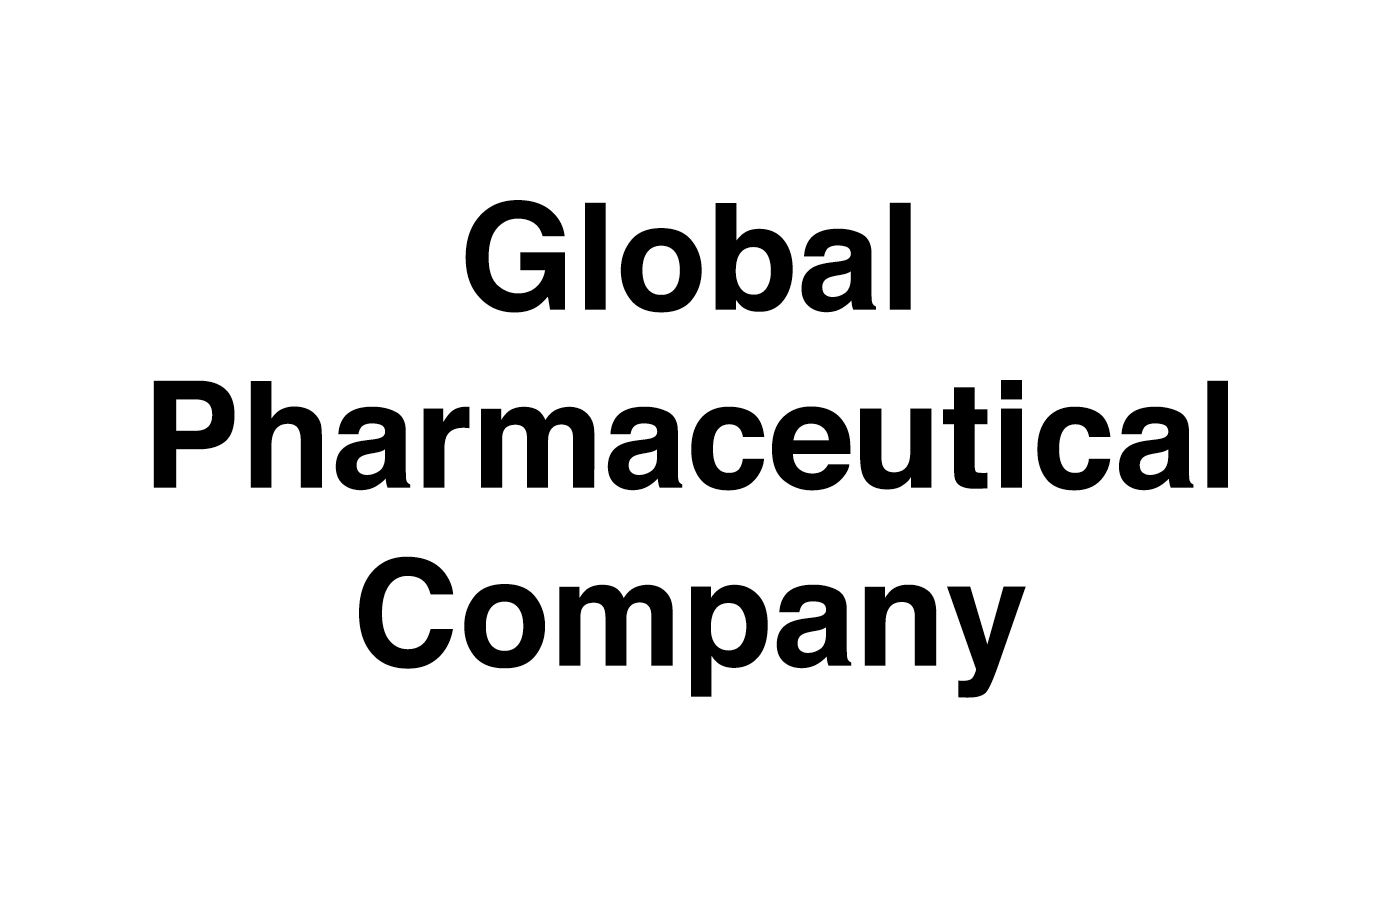 Global Pharmaceutical Company Projects